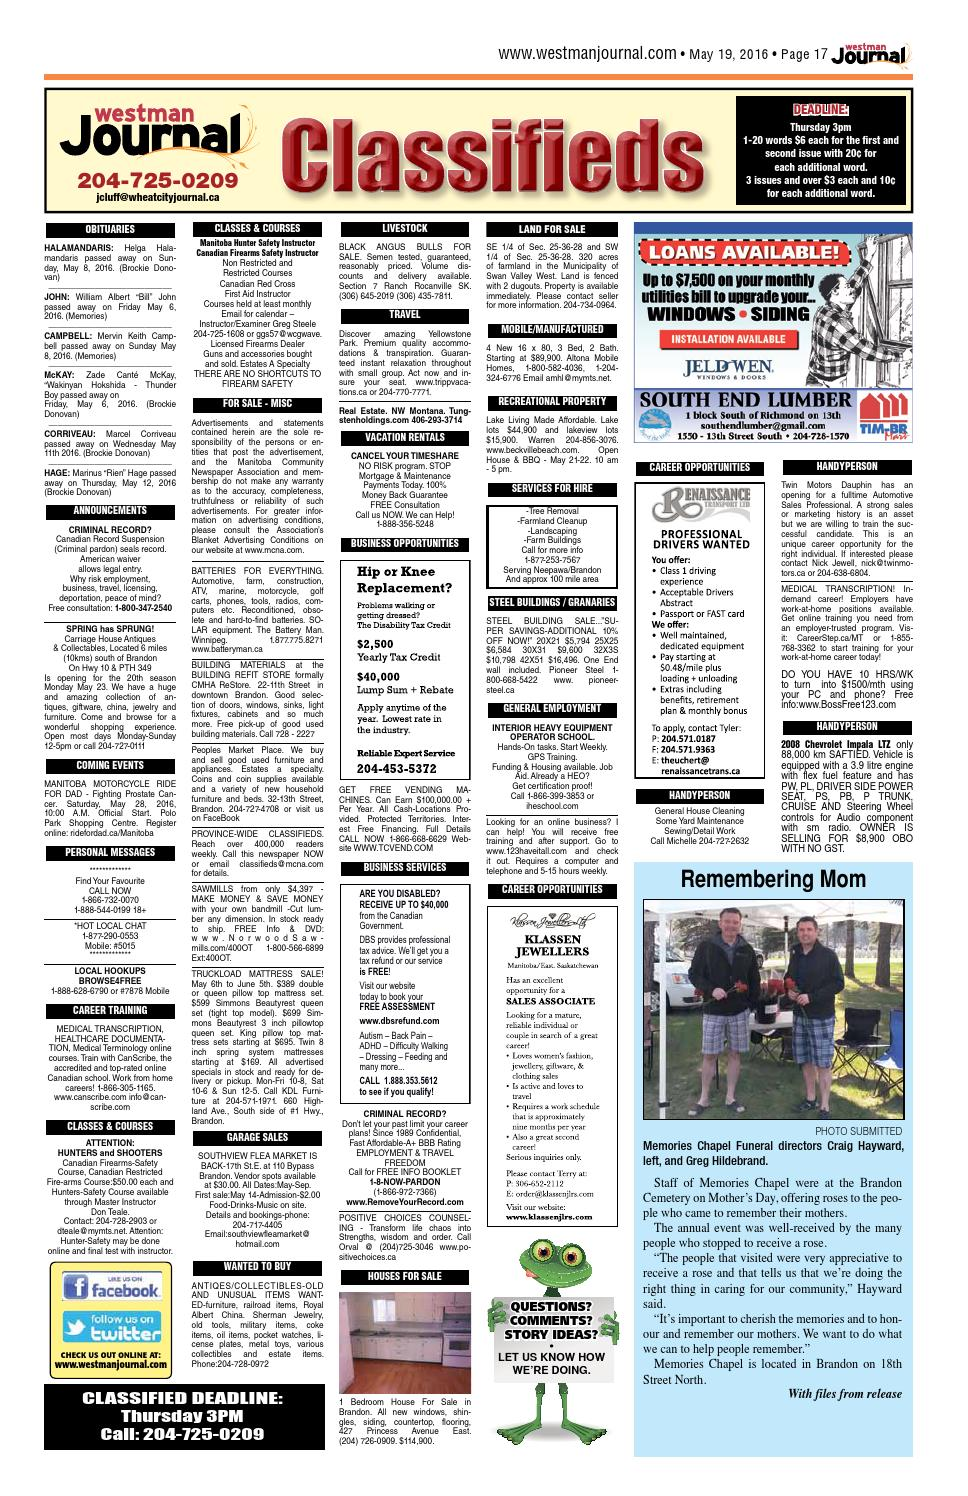 Westman Journal - May 19, 2016 by Westman Journal - issuu